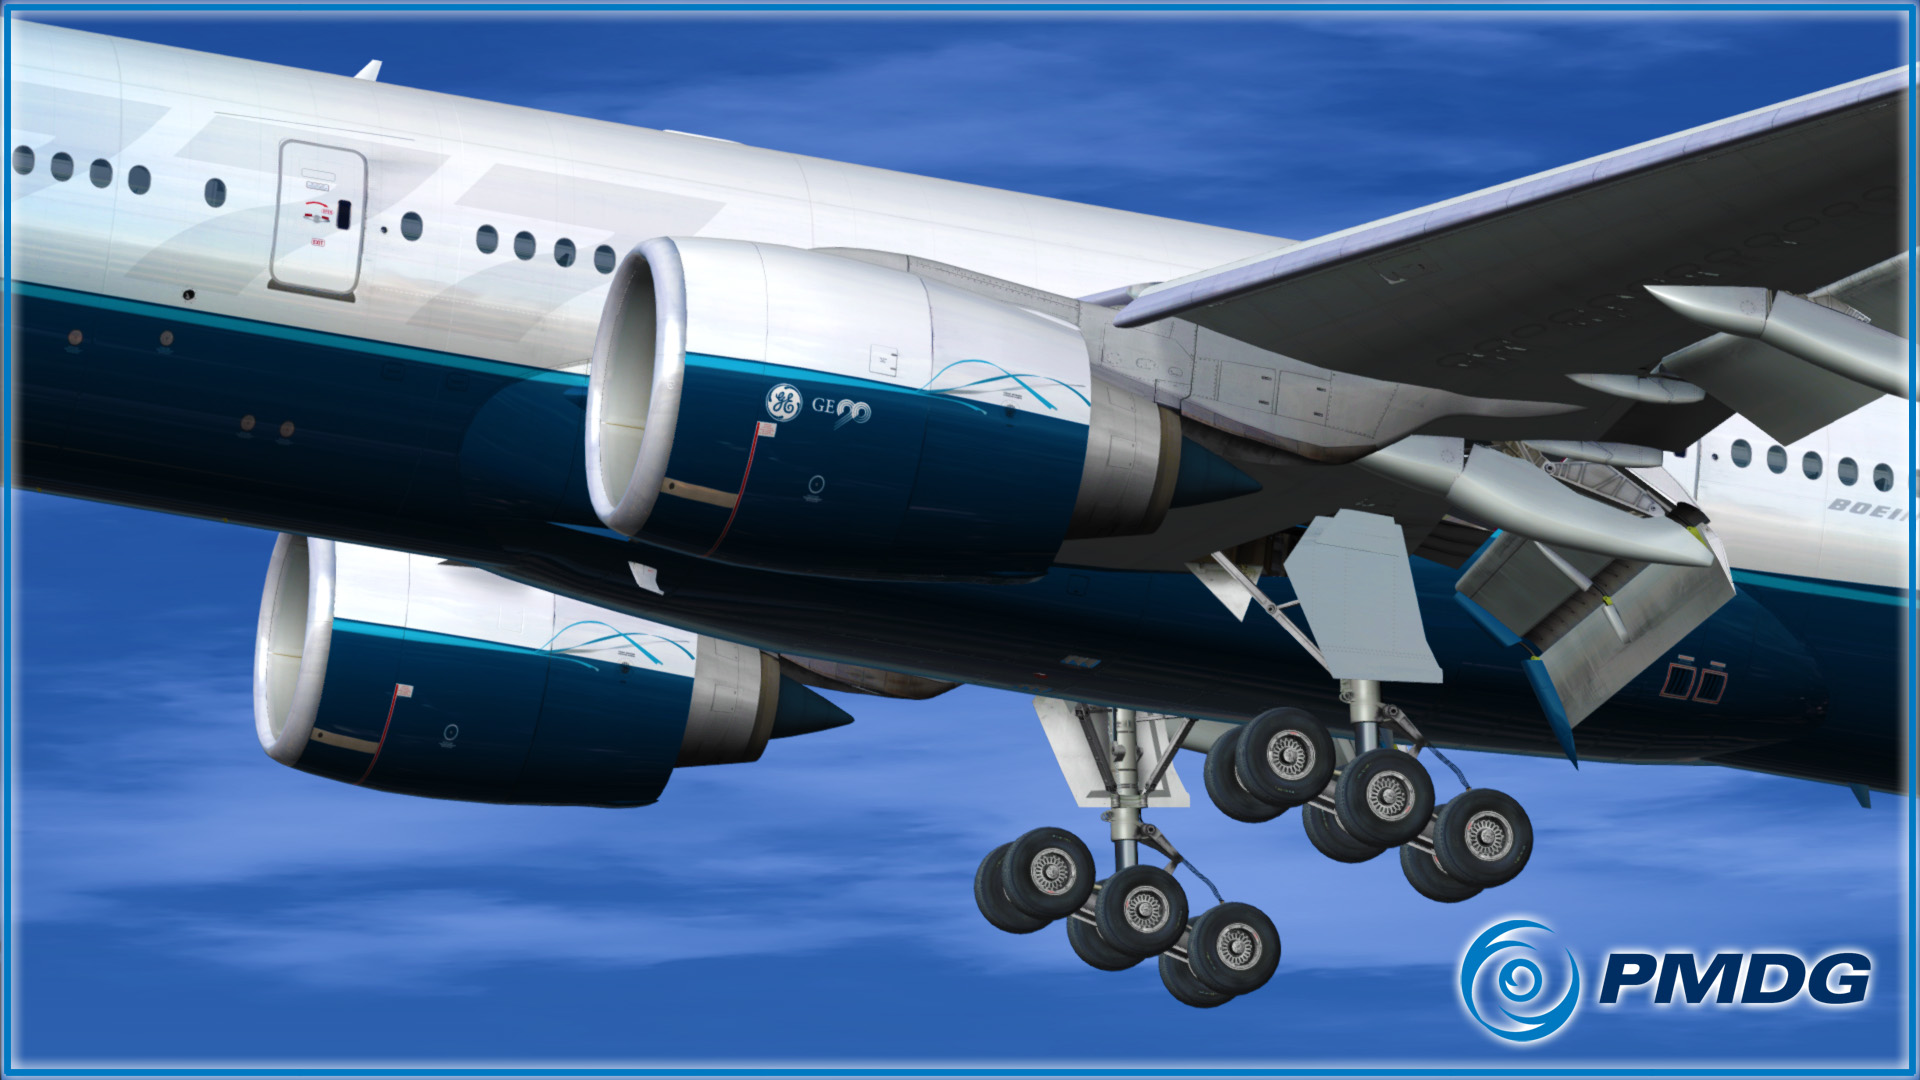 Fsx pmdg 777 activation key | 777 Activation  2019-03-18